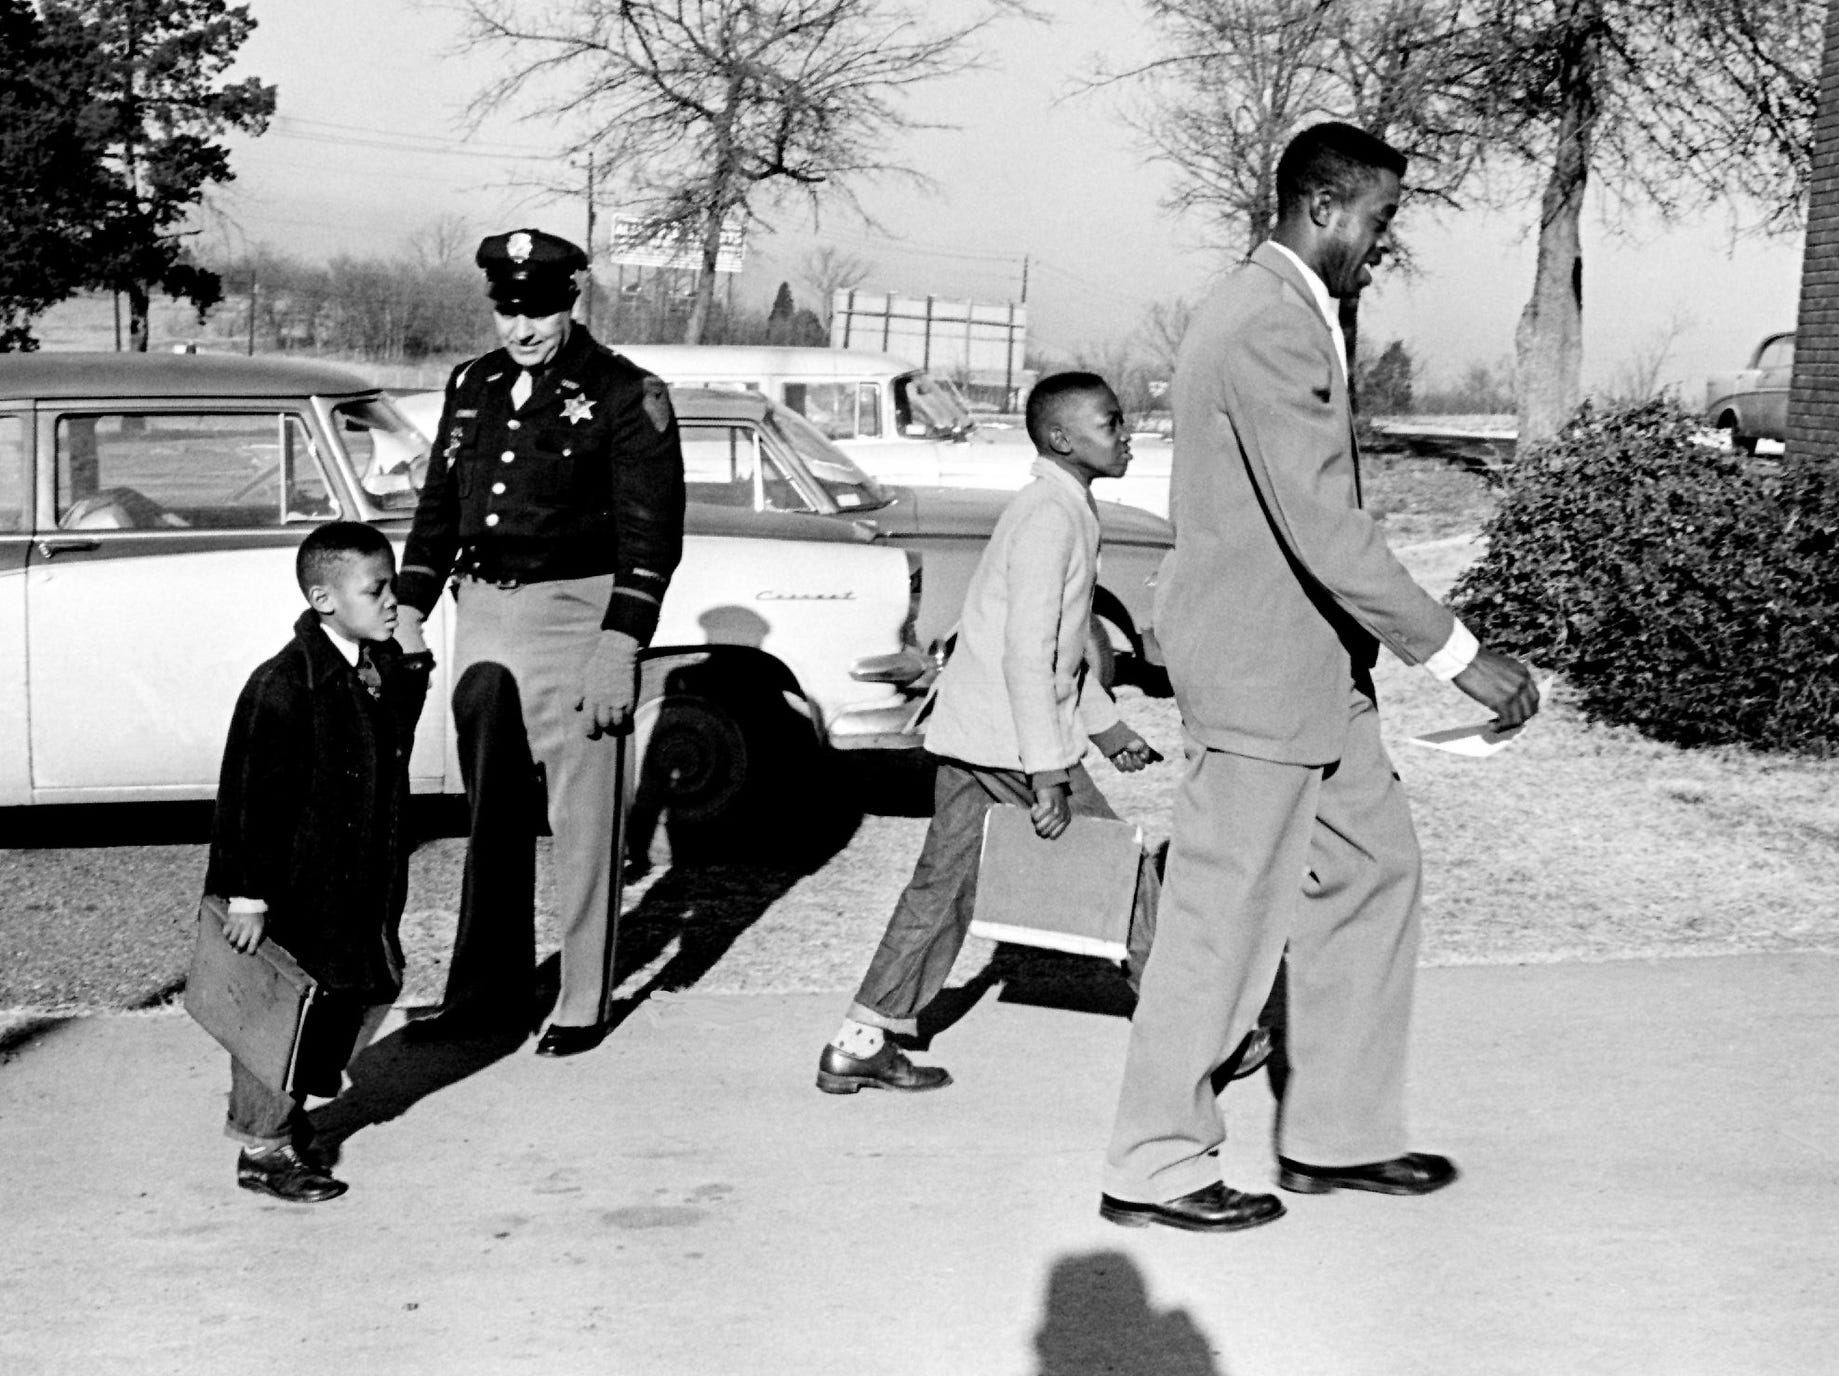 Under the watchful eyes of the Davidson County sheriff, a father leads his two sons into Mt. View Elementary School during the first day of desegregation of the formerly all-white county school Jan. 23, 1961. Thirty-nine black children enrolled in 10 formerly all-white Davidson County schools. There was no disturbance as the county desegregated the first four grades in accordance with a plan approved by Federal Judge William E. Miller.